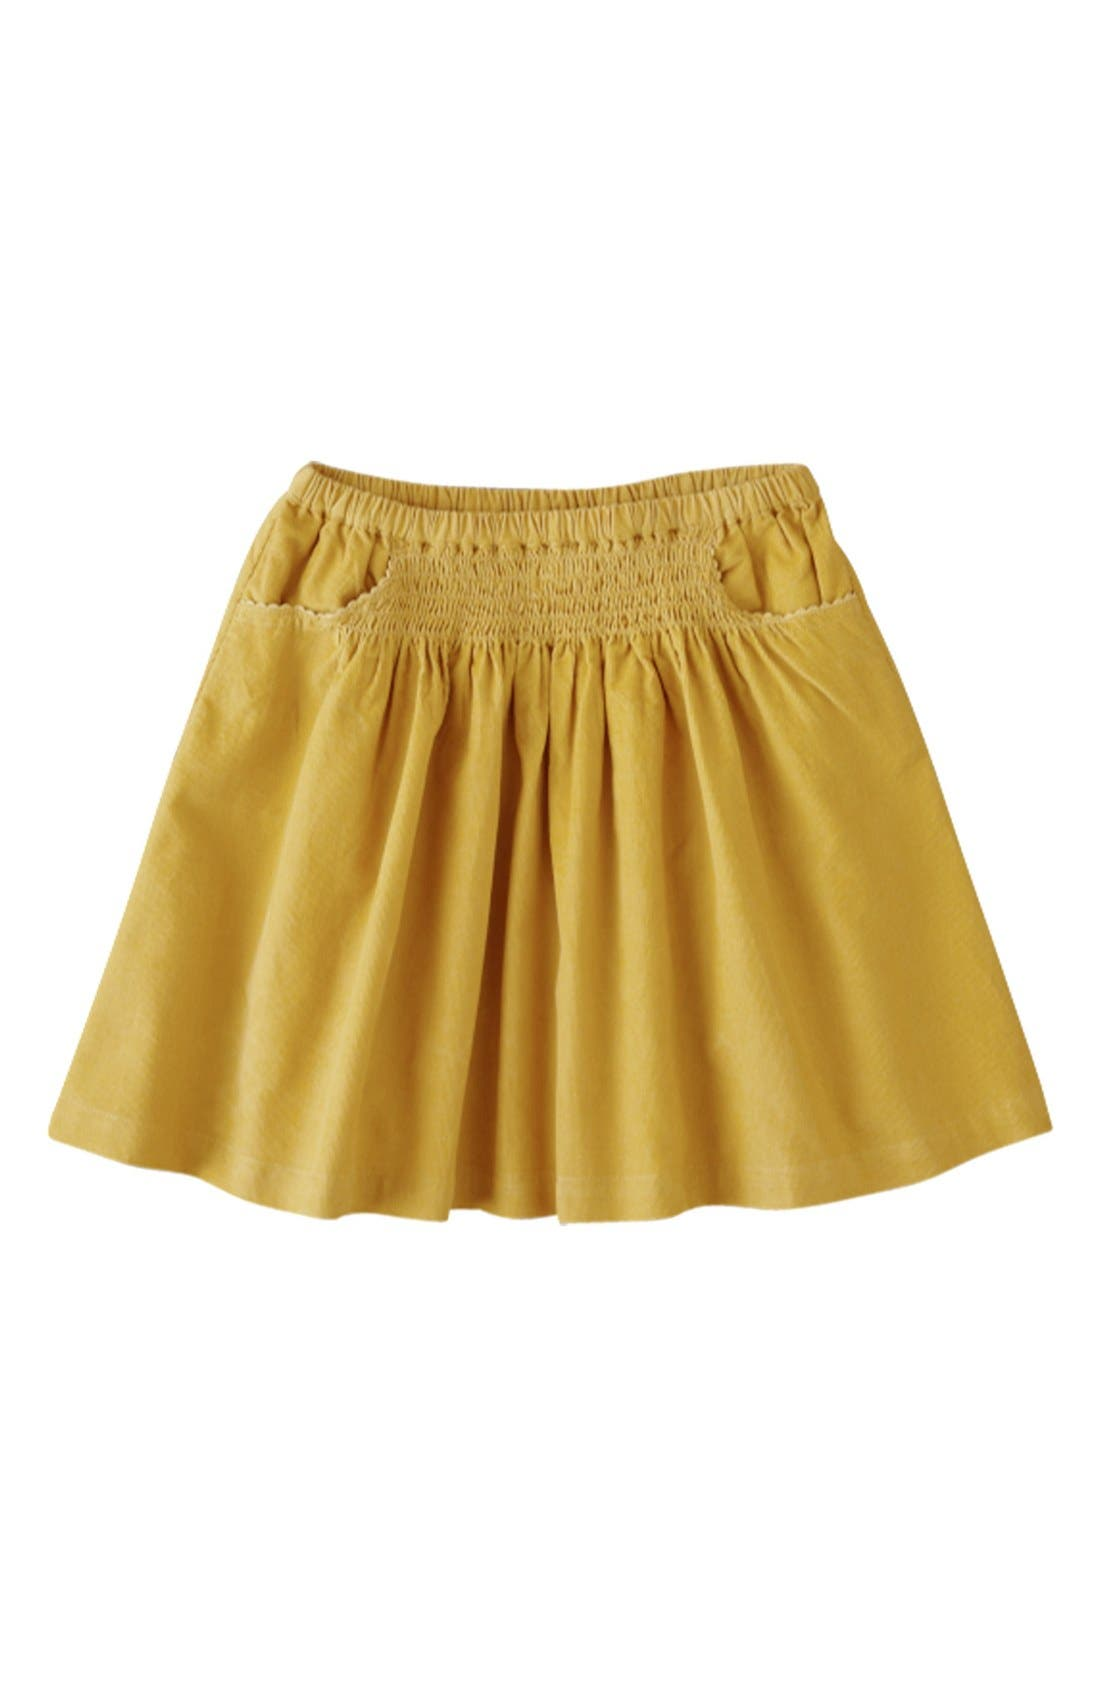 Alternate Image 1 Selected - Mini Boden 'Everyday' Corduroy Skirt (Little Girls & Big Girls)